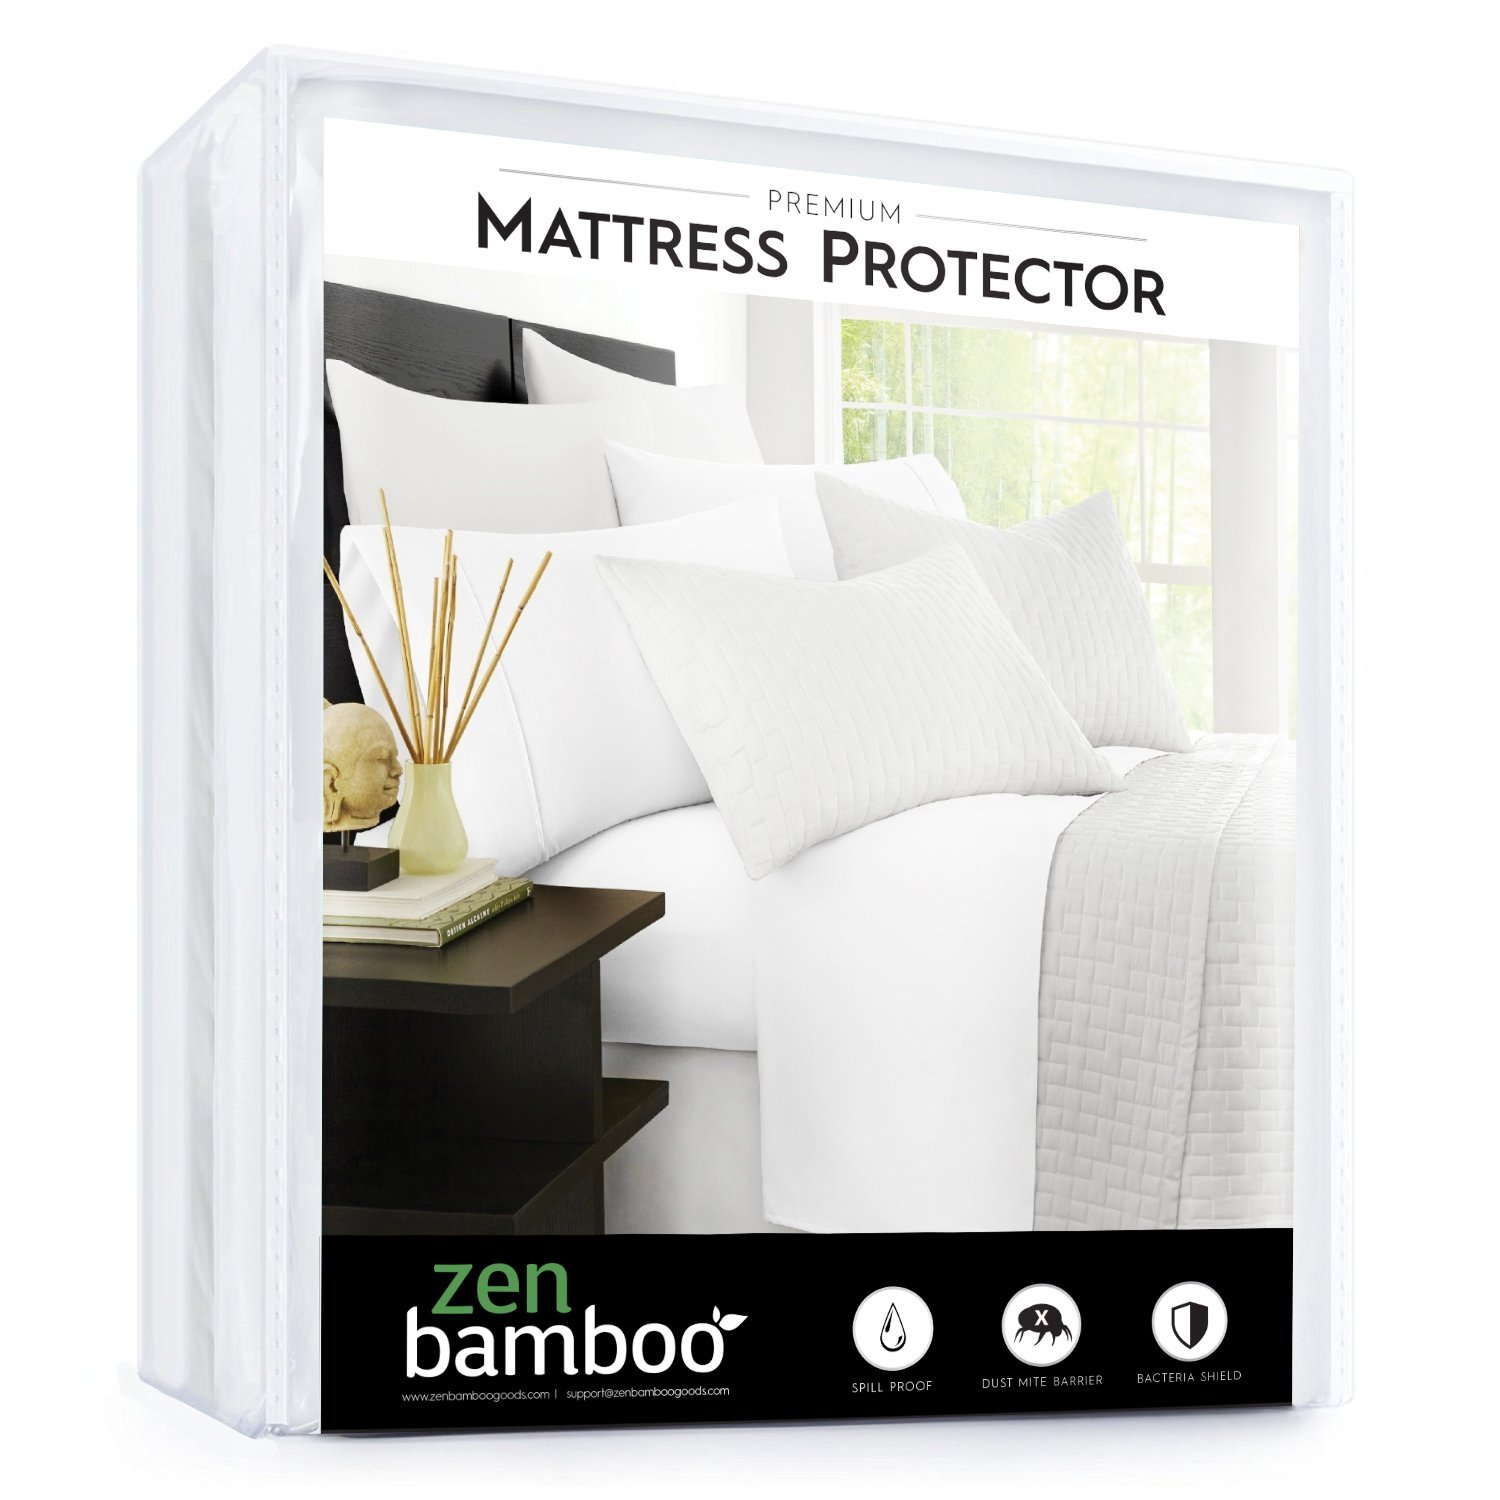 Zen Bamboo Mattress Protector - Best Lab Tested Premium Waterproof, Hypoallergenic, Cool and Breathable Bamboo Derived From Rayon Mattress Protector and Cover - Twin RG-ZB-BMBMTRSPRO-T-R